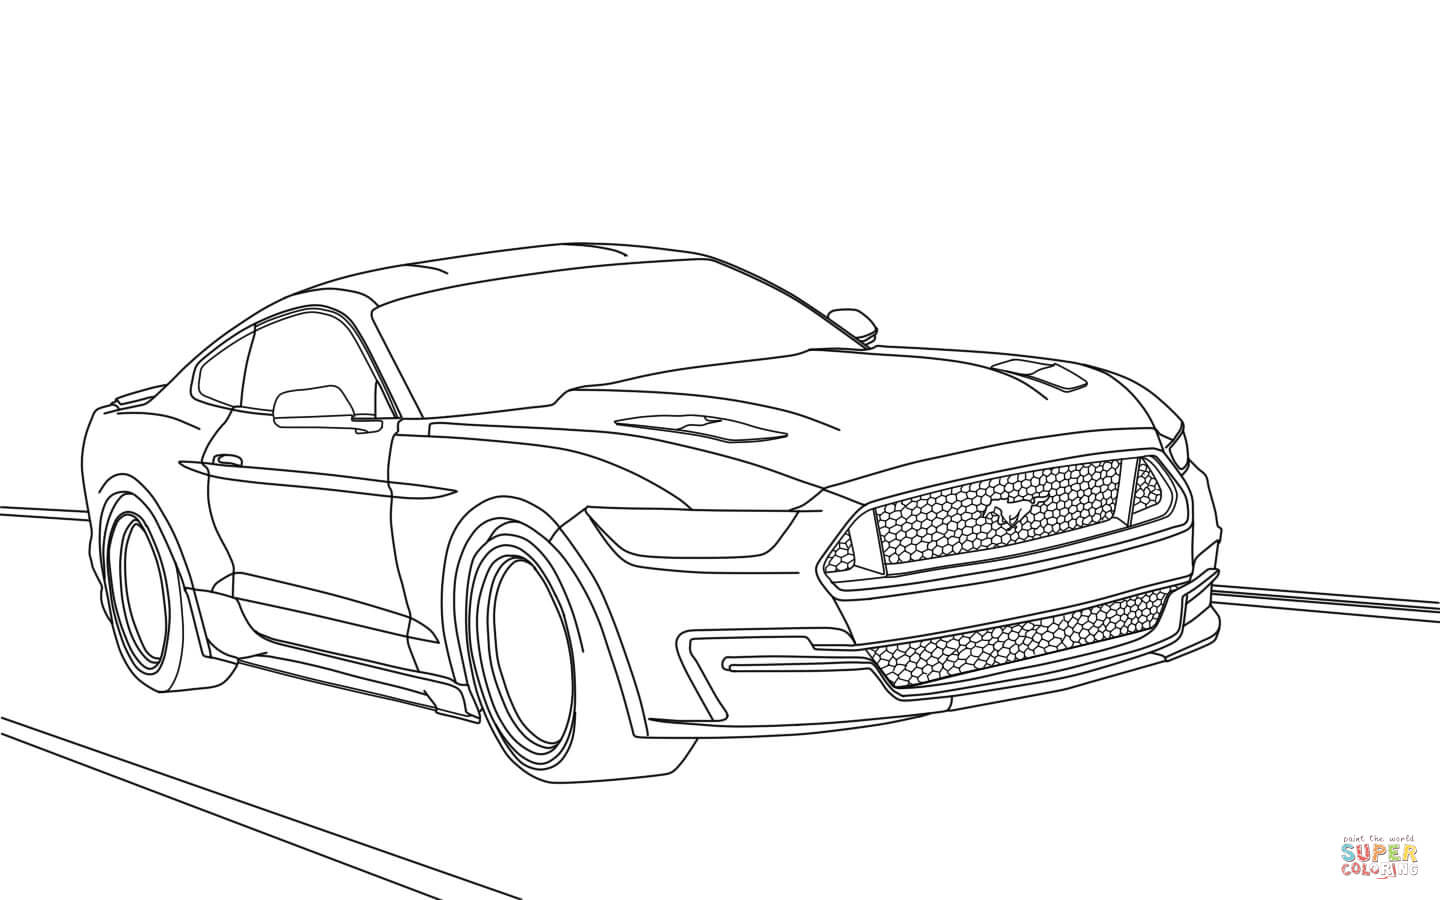 Ford Mustang 2015 Coloring Page Gallery Of Mustang Coloring Pages Beautiful ford Mustang Gt Car Coloring Pages Download